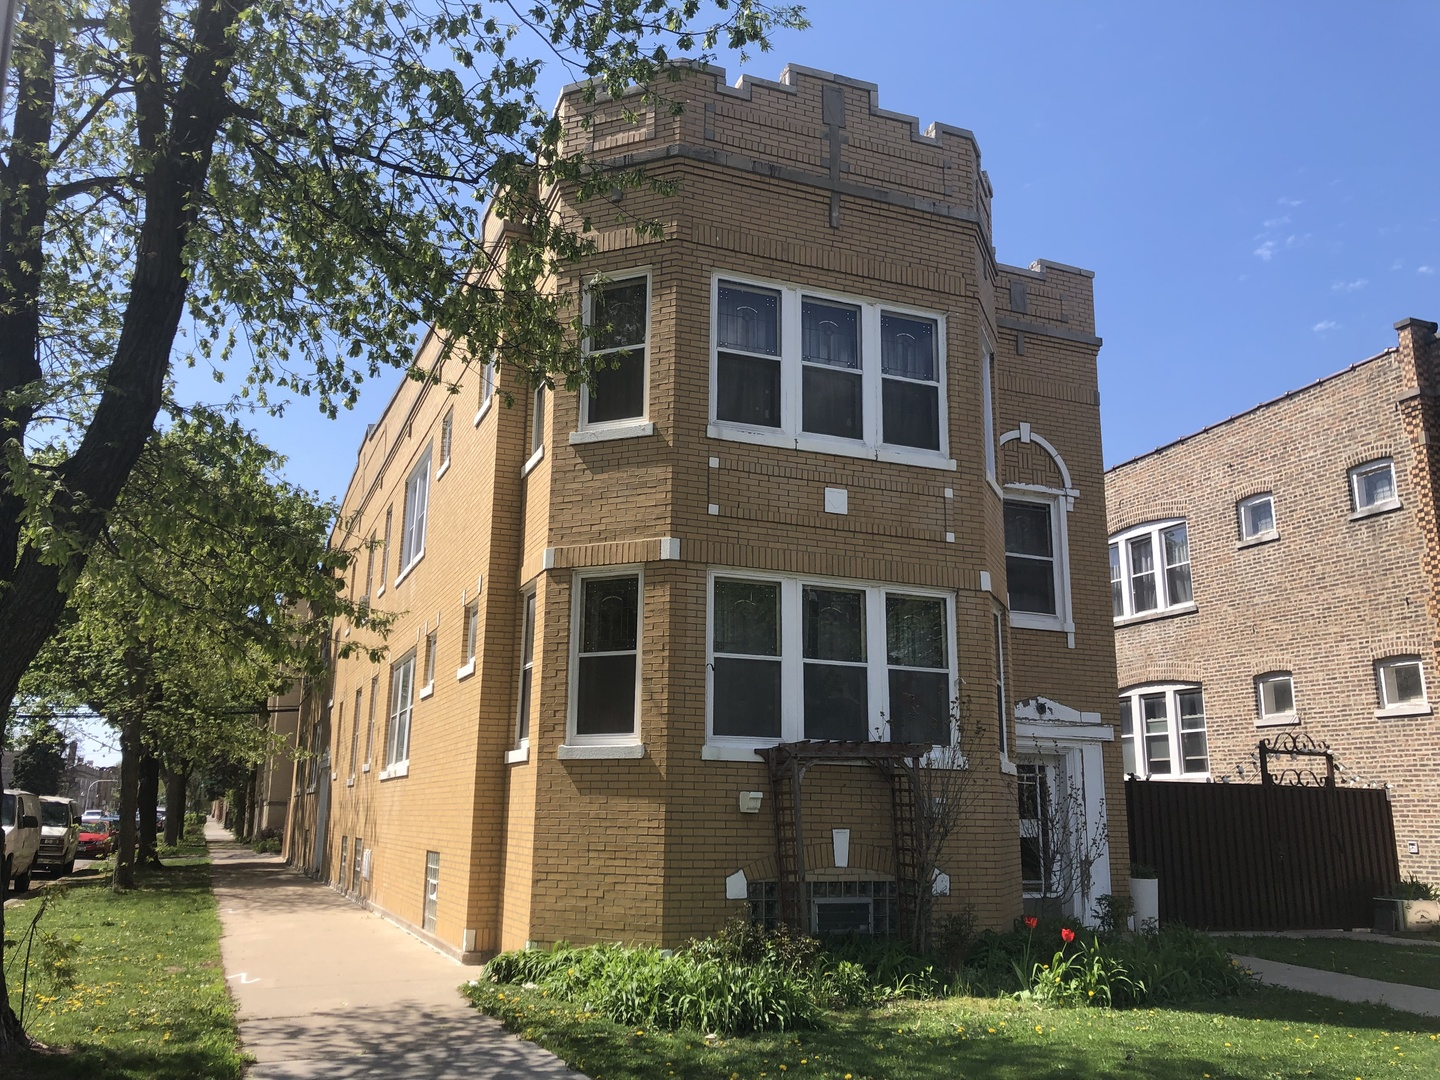 BELMONT CRAGIN. Great opportunity to buy a 4 unit brick building plus 2 non-conforming related-livin